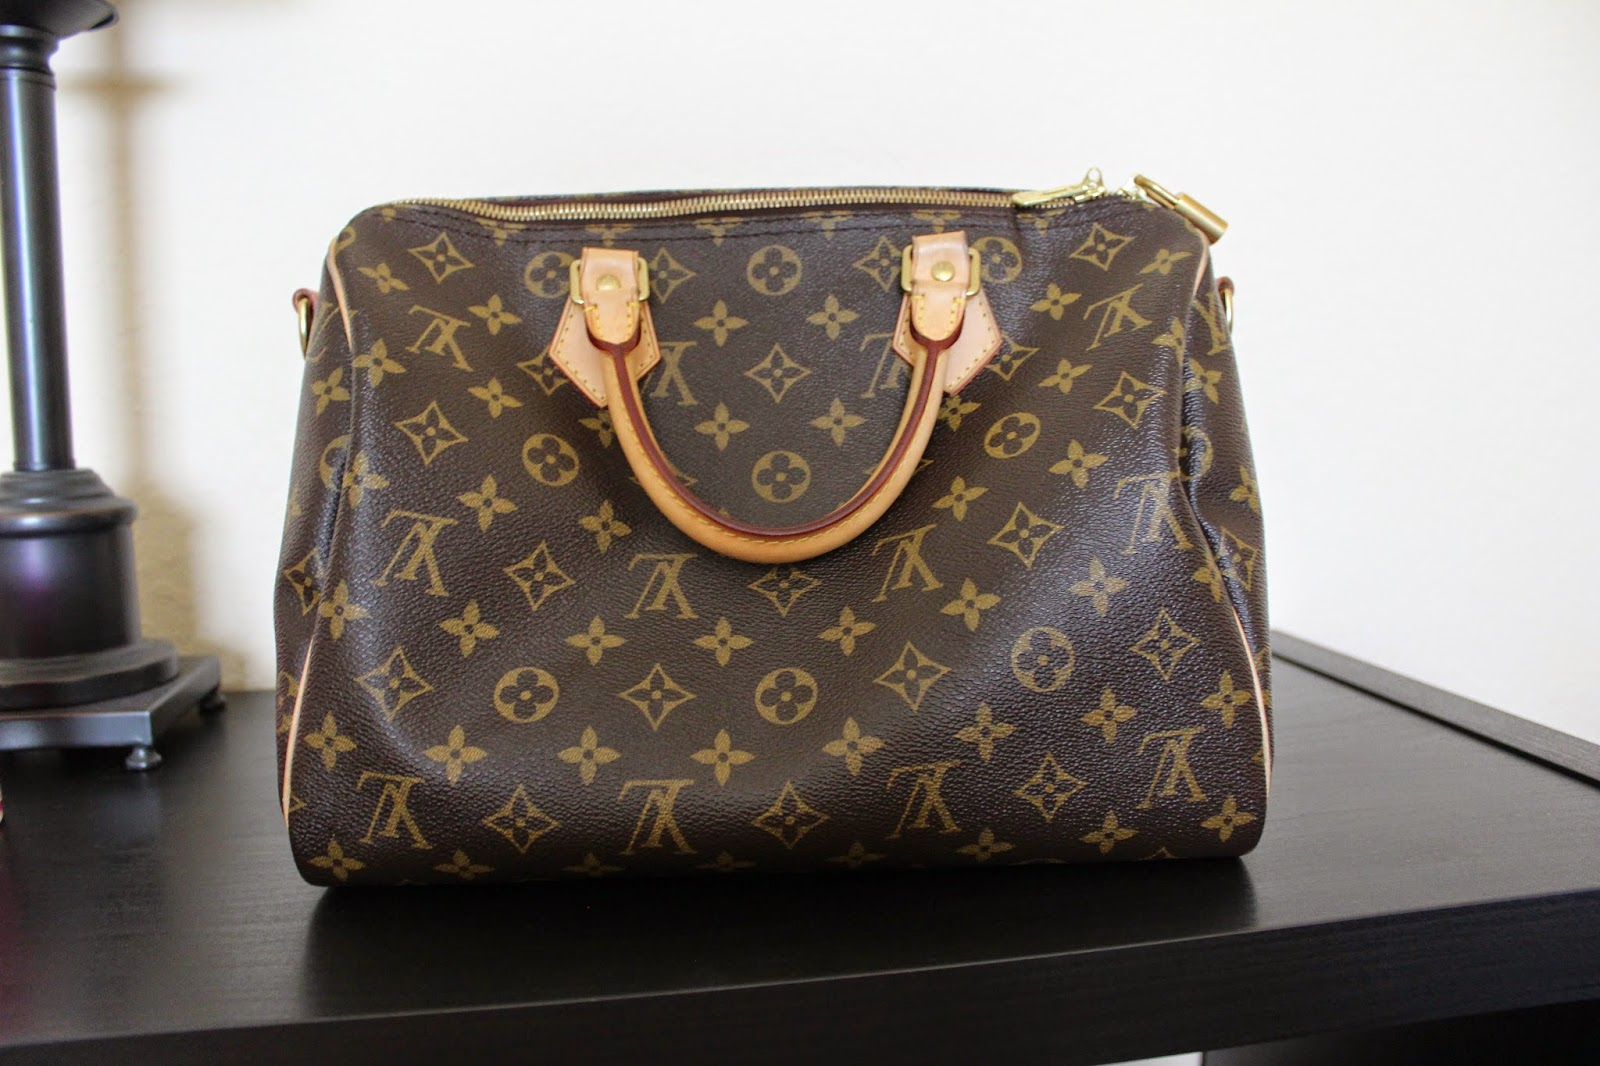 Back of Louis Vuitton Speedy Bandoulière 30